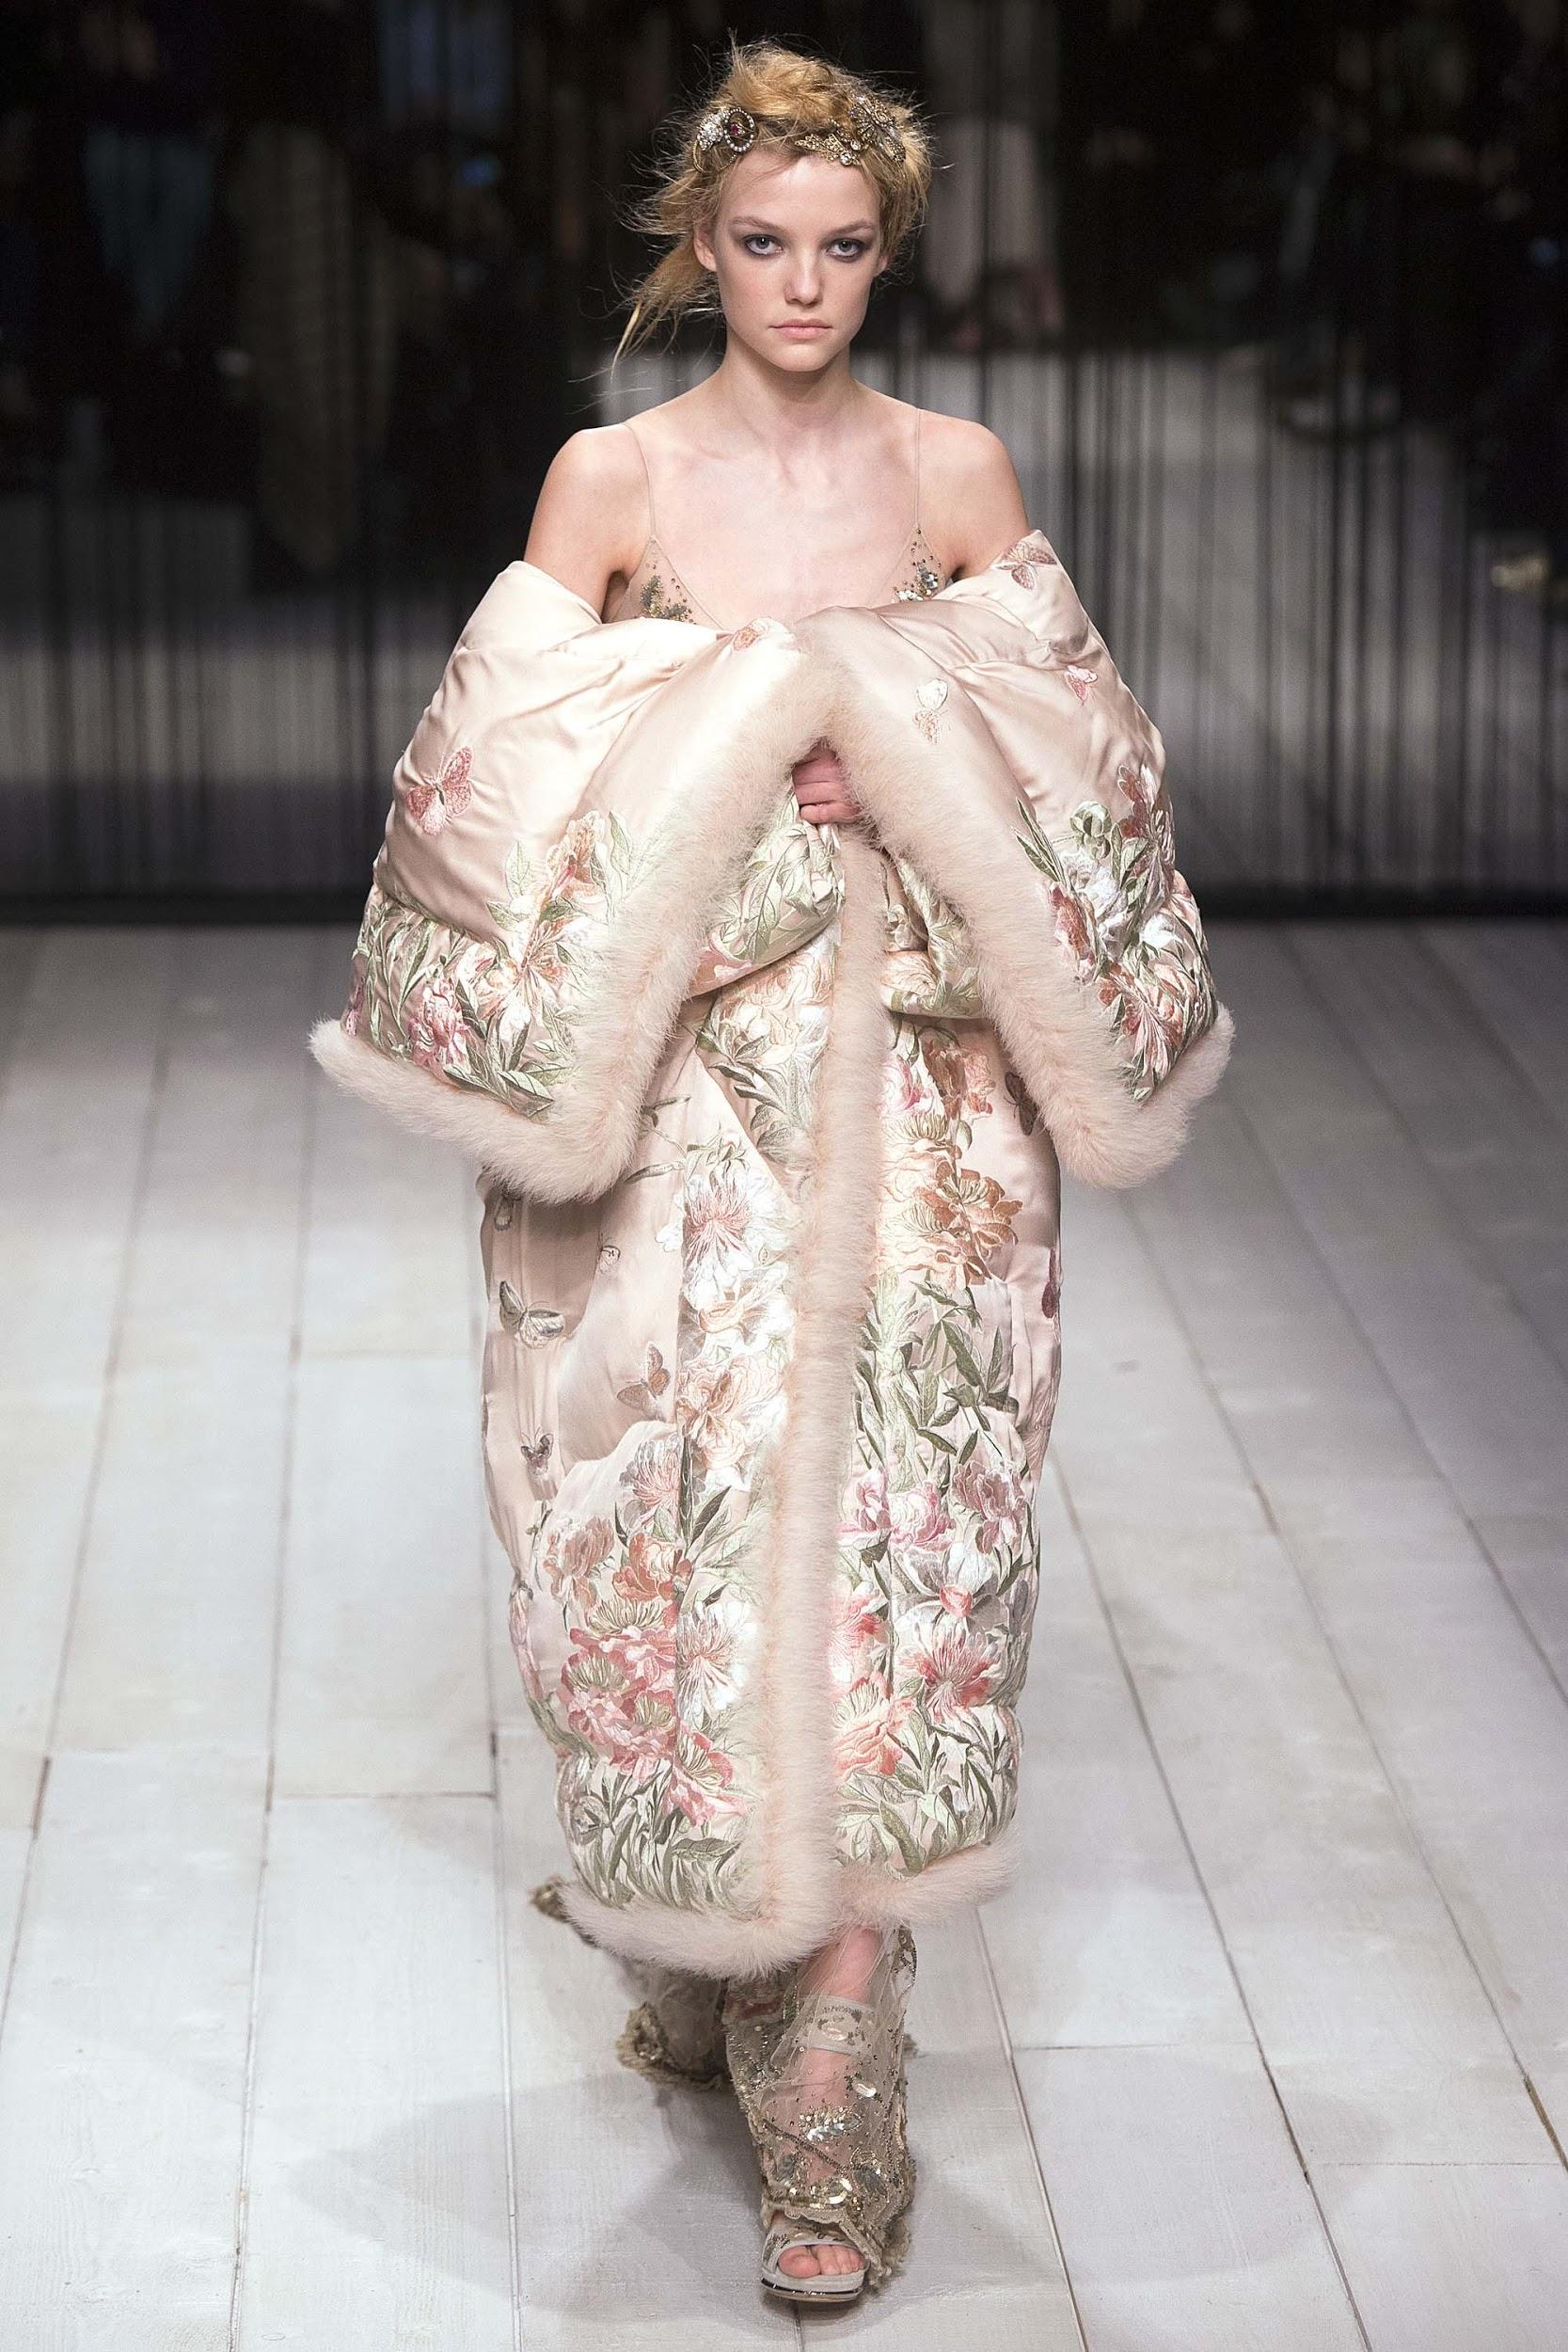 Alexander McQueen's extremely long puffer coat, with floral pattern, fur details, all in a light and soft antique pink.